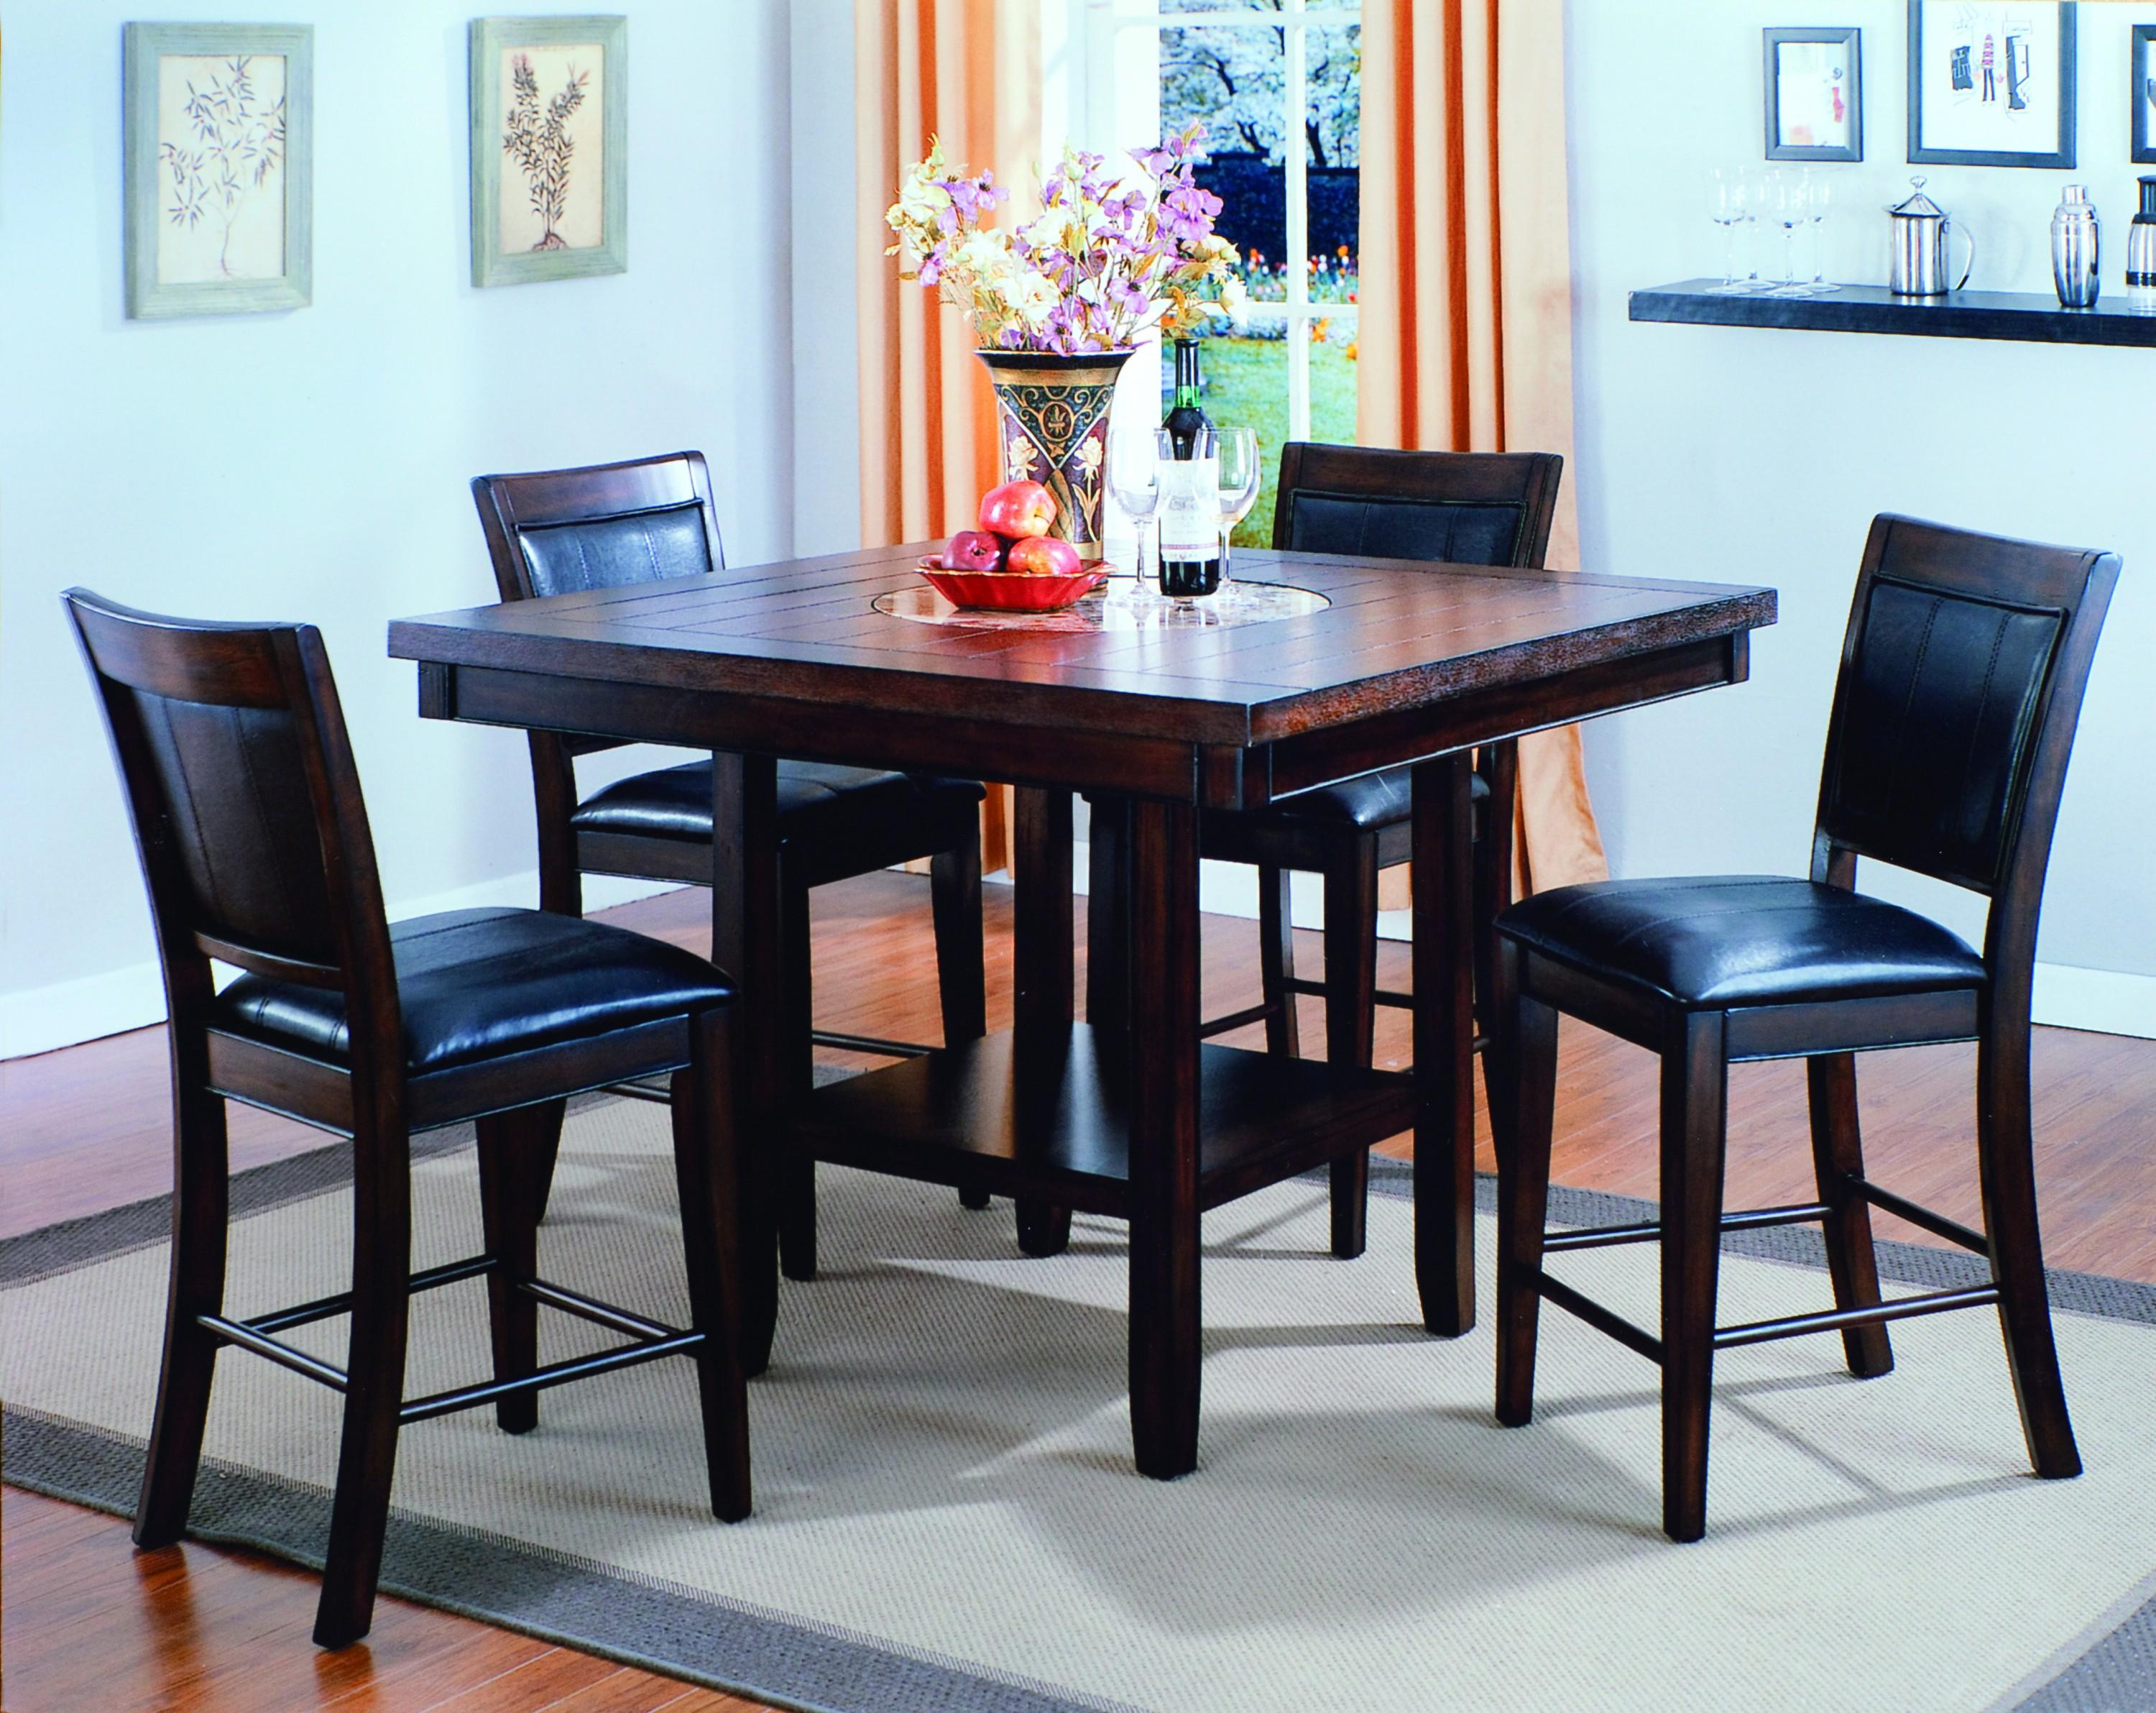 Fulton 5 Piece Counter Height Table and Chair Set by Crown Mark at Furniture Fair - North Carolina